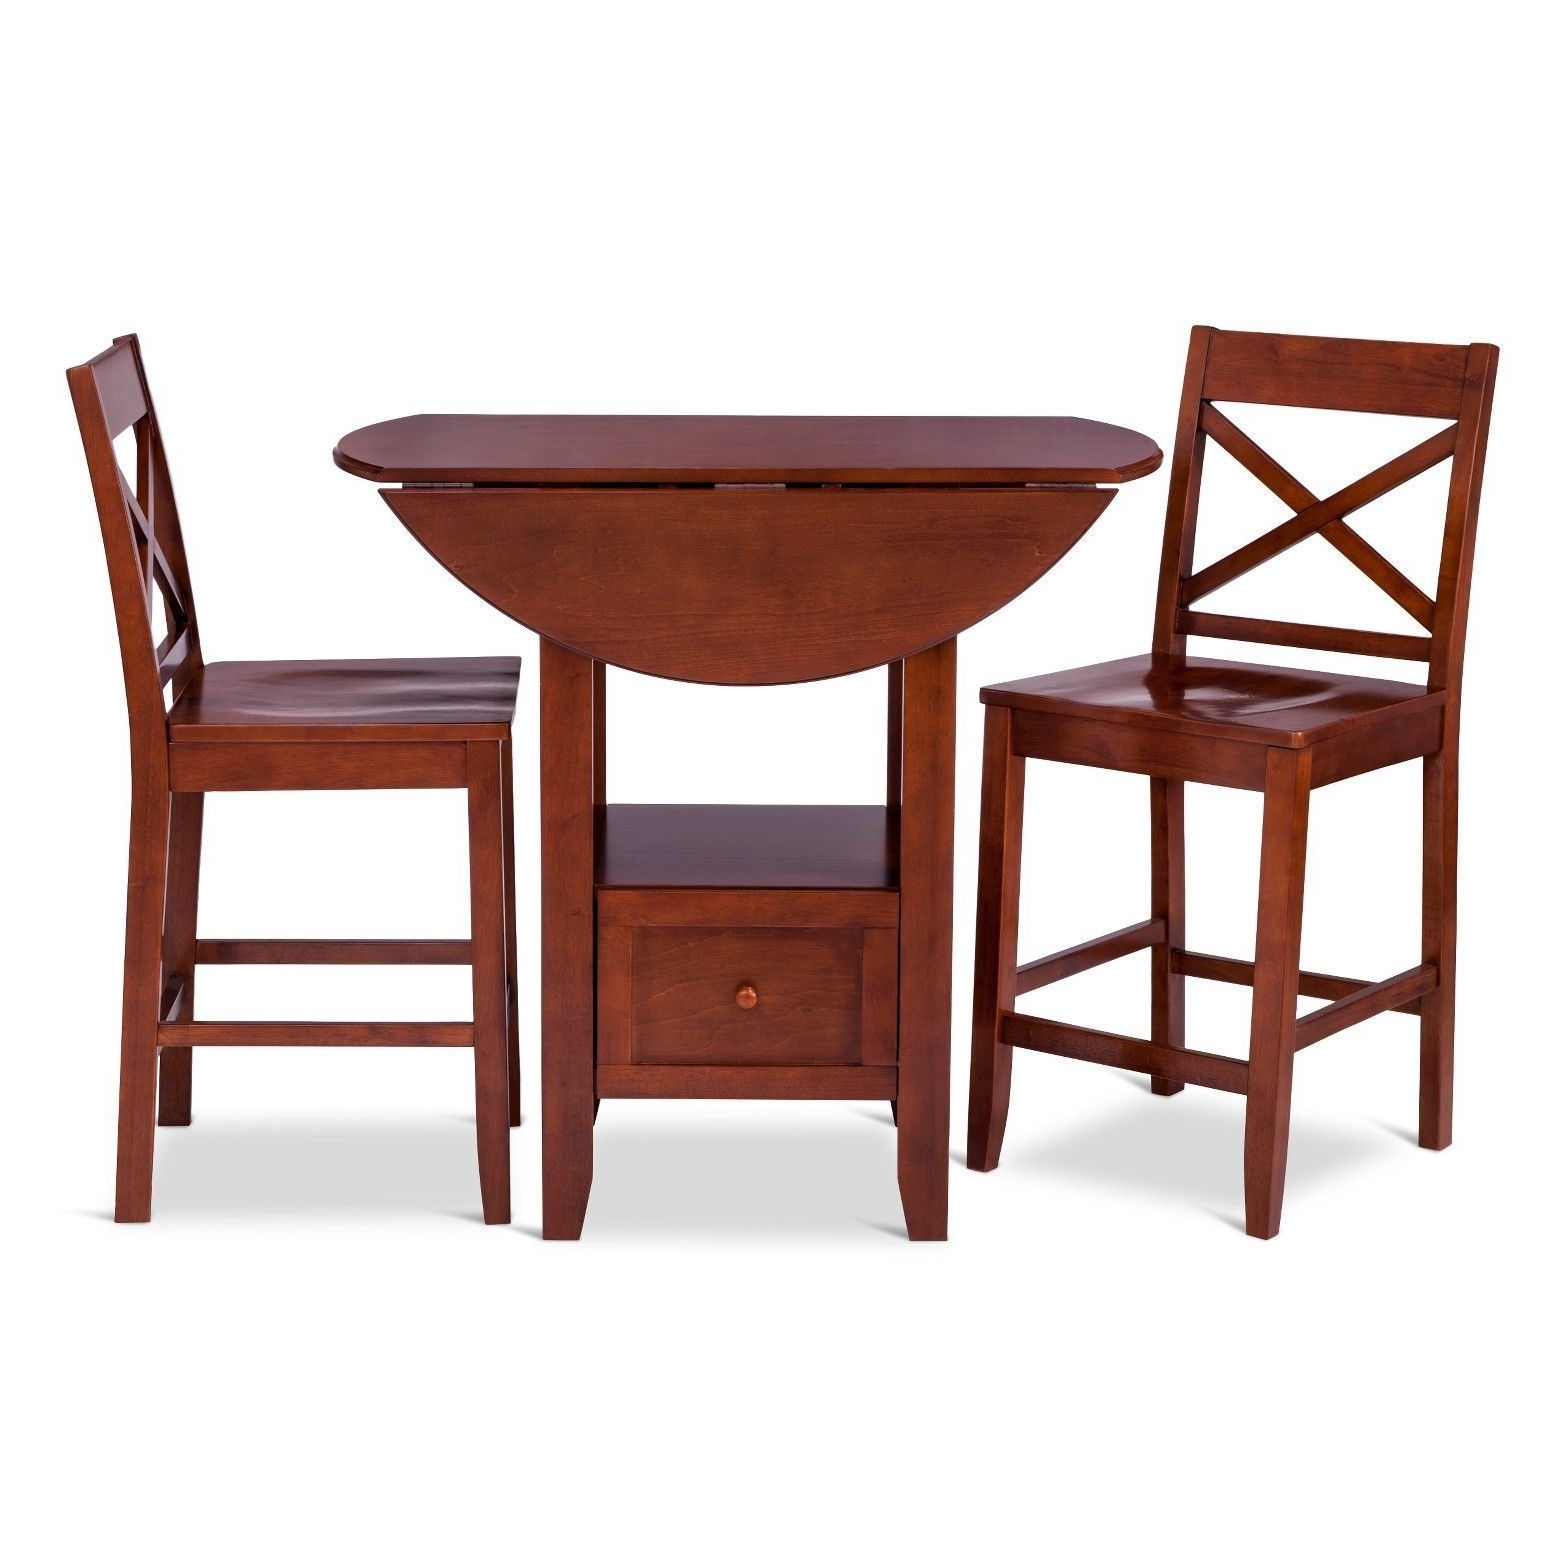 Newest Rocco 9 Piece Extension Counter Sets for The 3 Piece Storage Pub Set From Threshold™ Provides You A Spot For